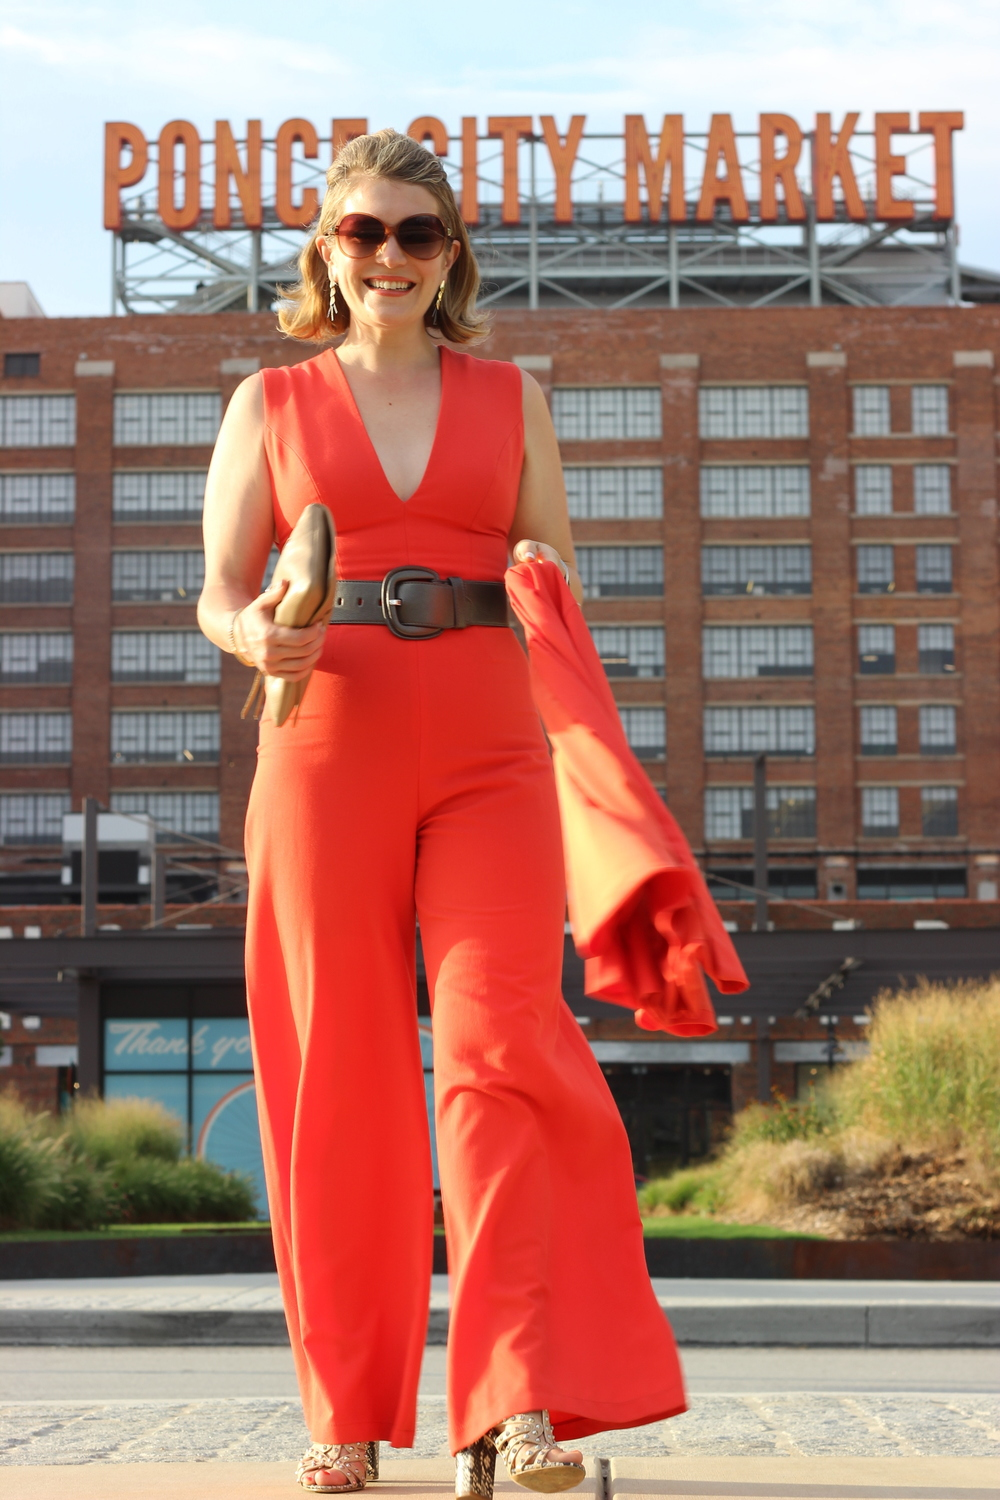 SMILING on date night to The Mercury at Ponce City Market // Jumpsuit by Alexis via Rent the Runway